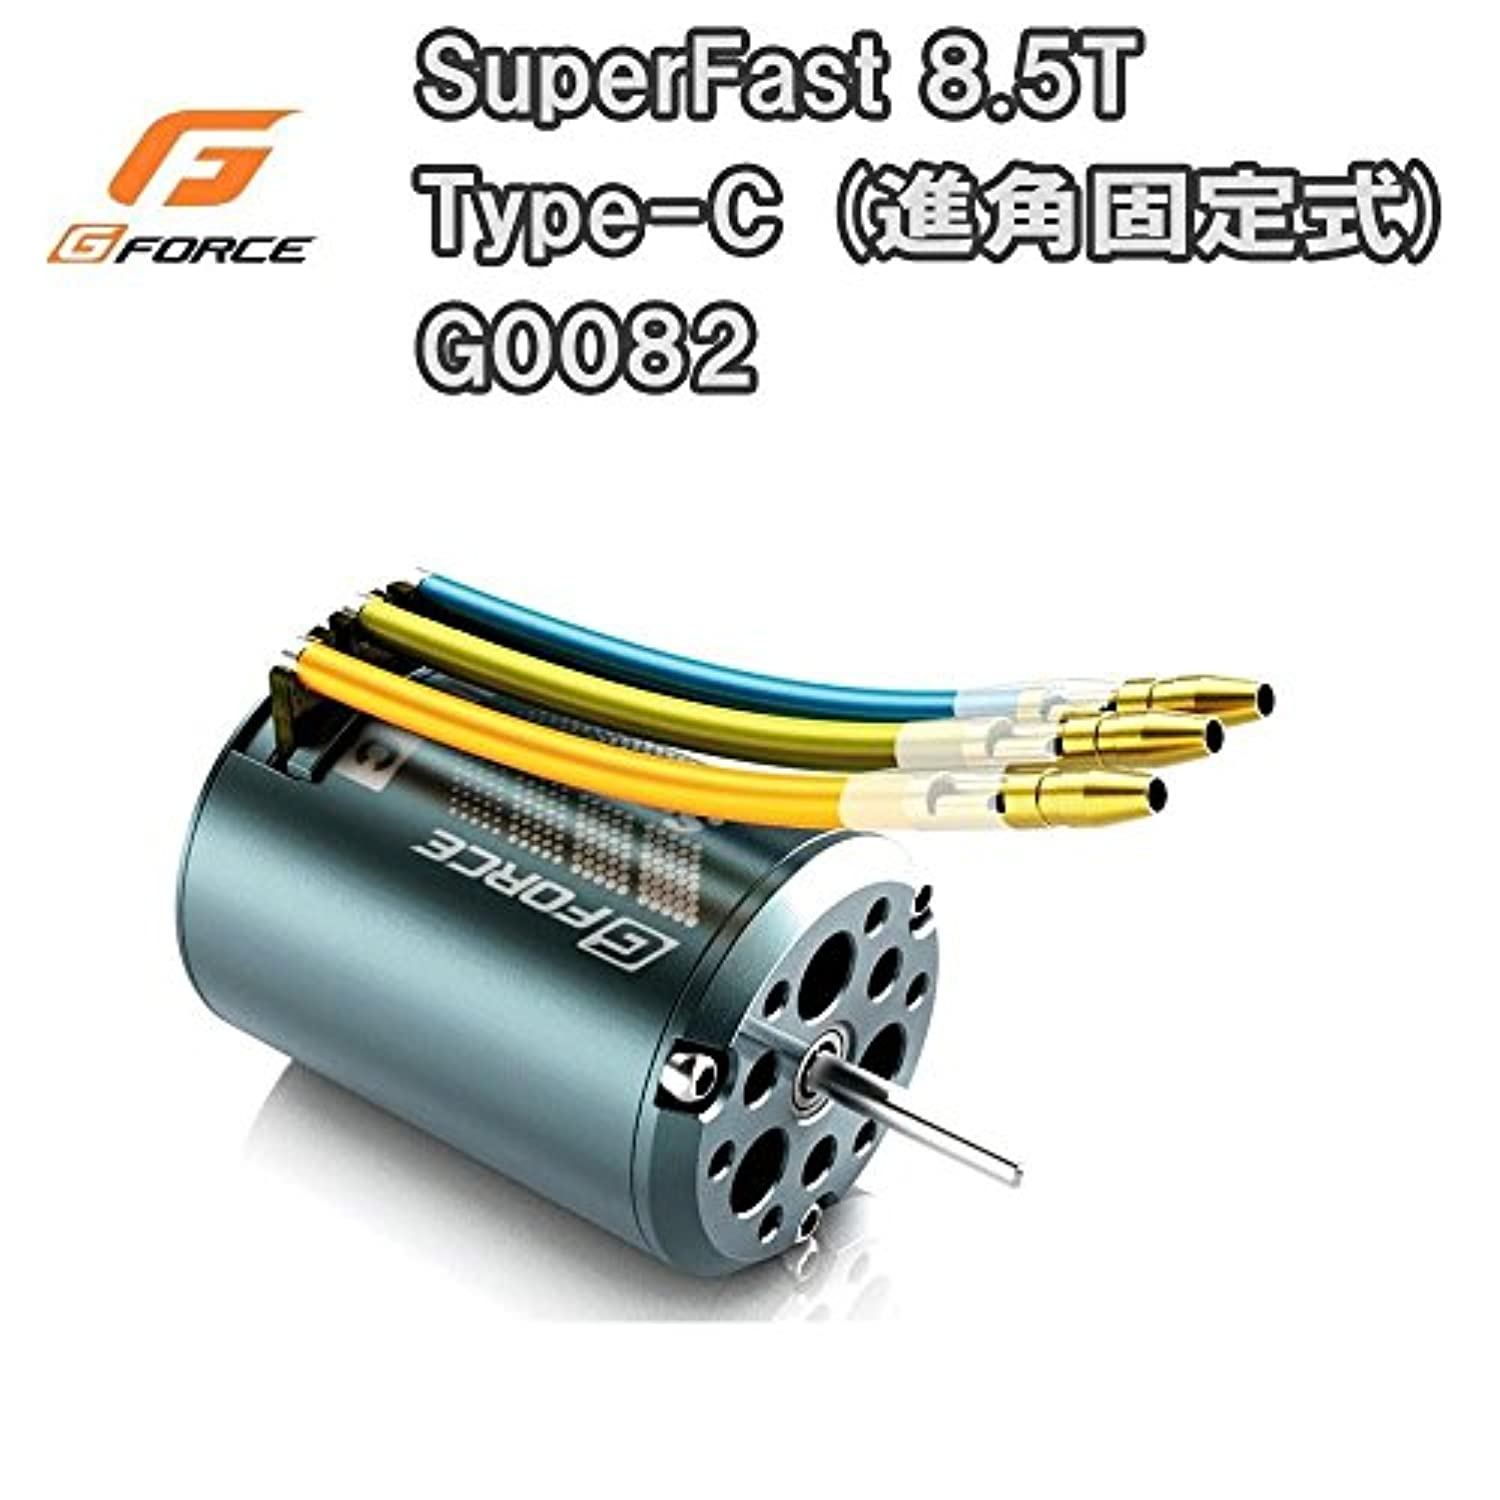 G-FORCE ジーフォース SuperFast 8.5T Type-C (進角固定式) G0082